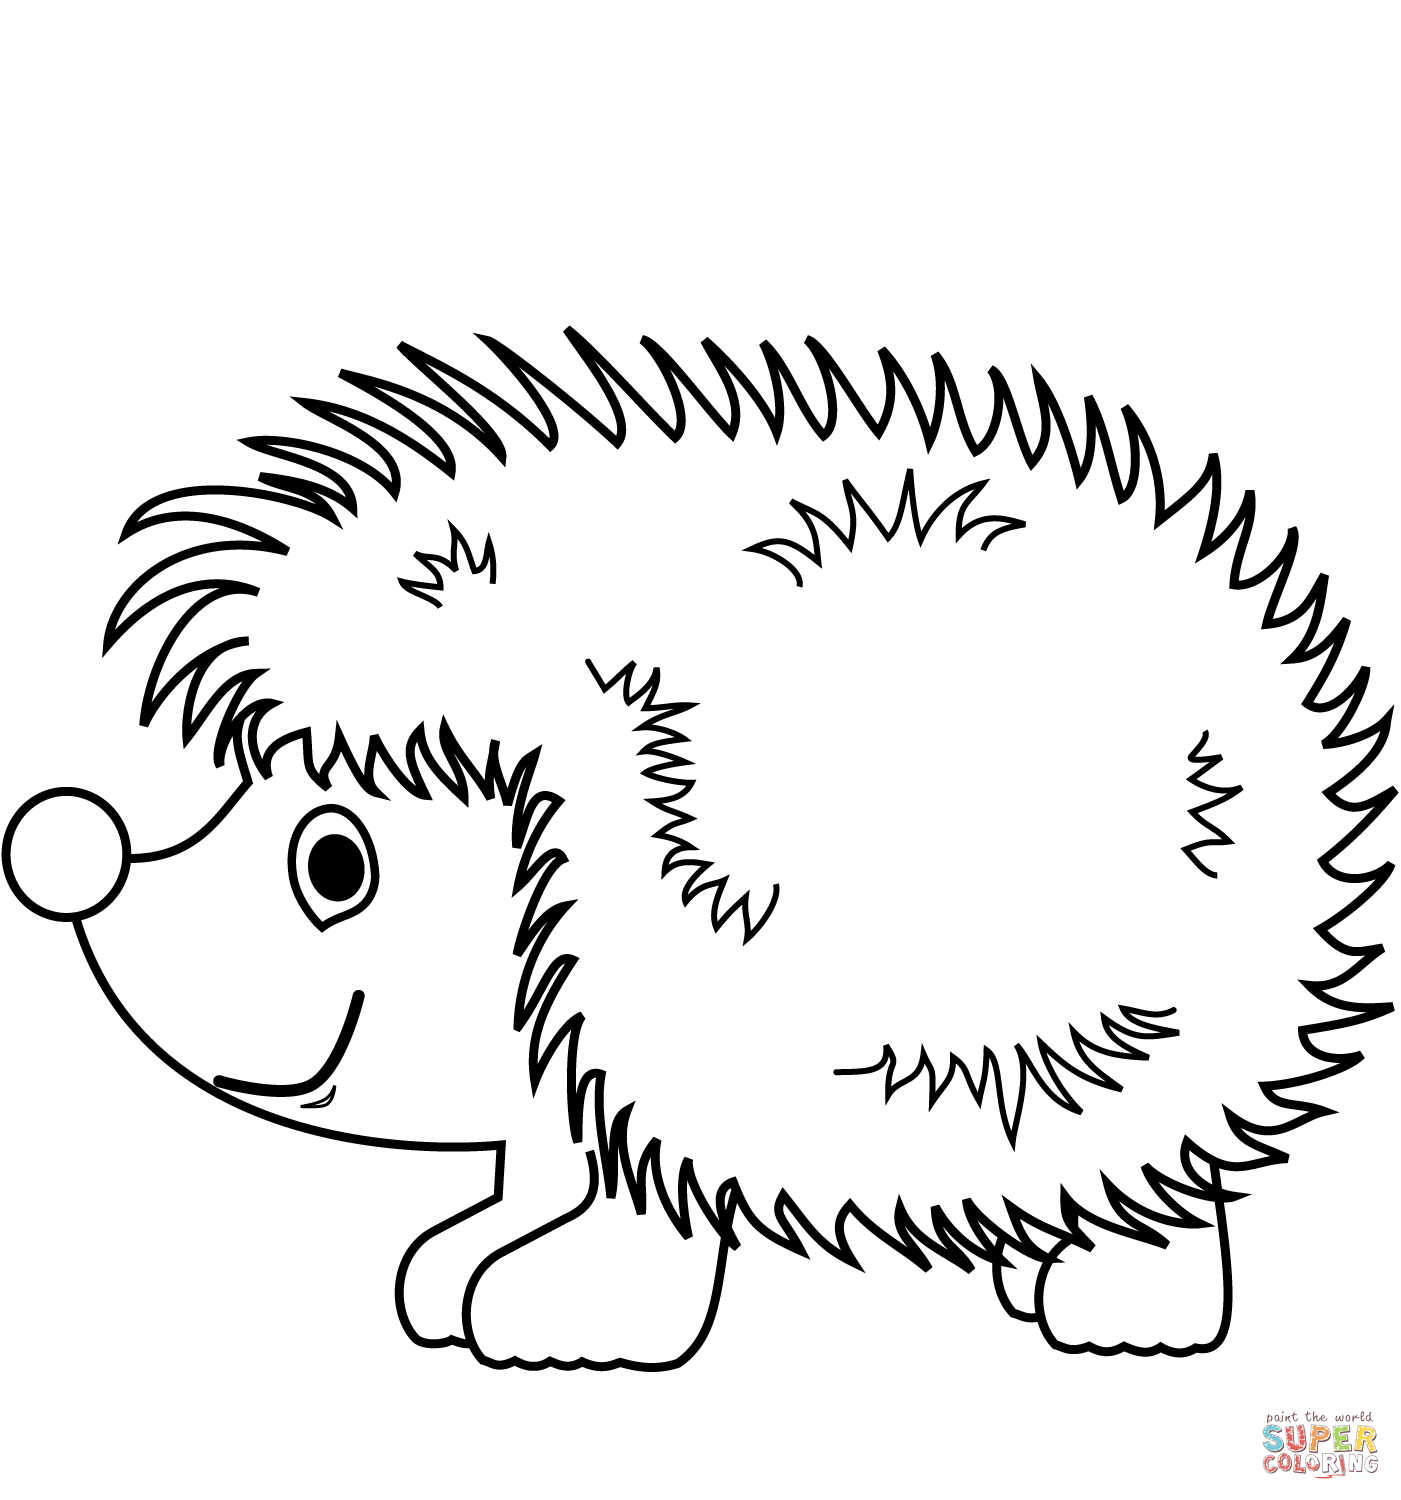 pictures of hedgehogs to colour cute hedgehog coloring page free printable coloring pages to of pictures hedgehogs colour